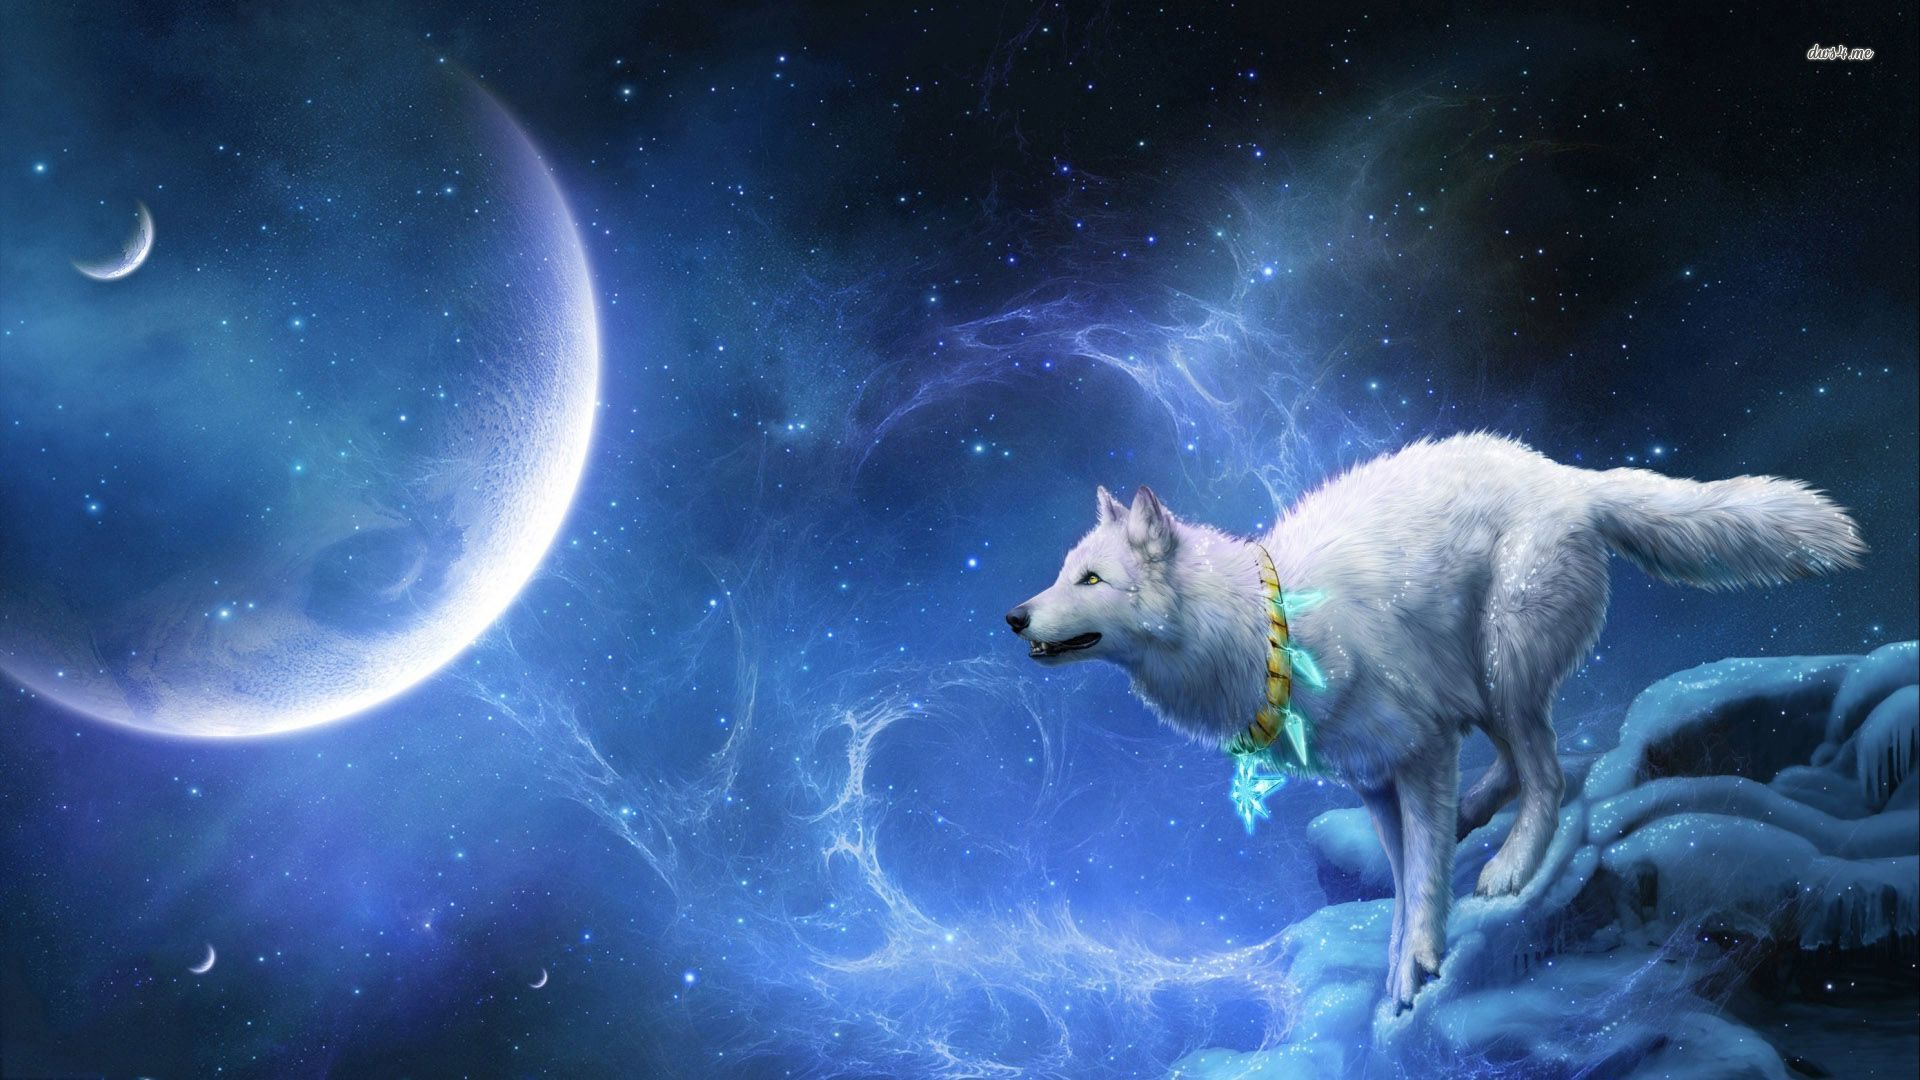 Free Download Download Galaxy Wolf Wallpaper 34 Wallpaper For Your Screen 1920x1080 For Your Desktop Mobile Tablet Explore 29 Black Wolf Galaxy Wallpapers Black Wolf Galaxy Wallpapers Galaxy Wolf